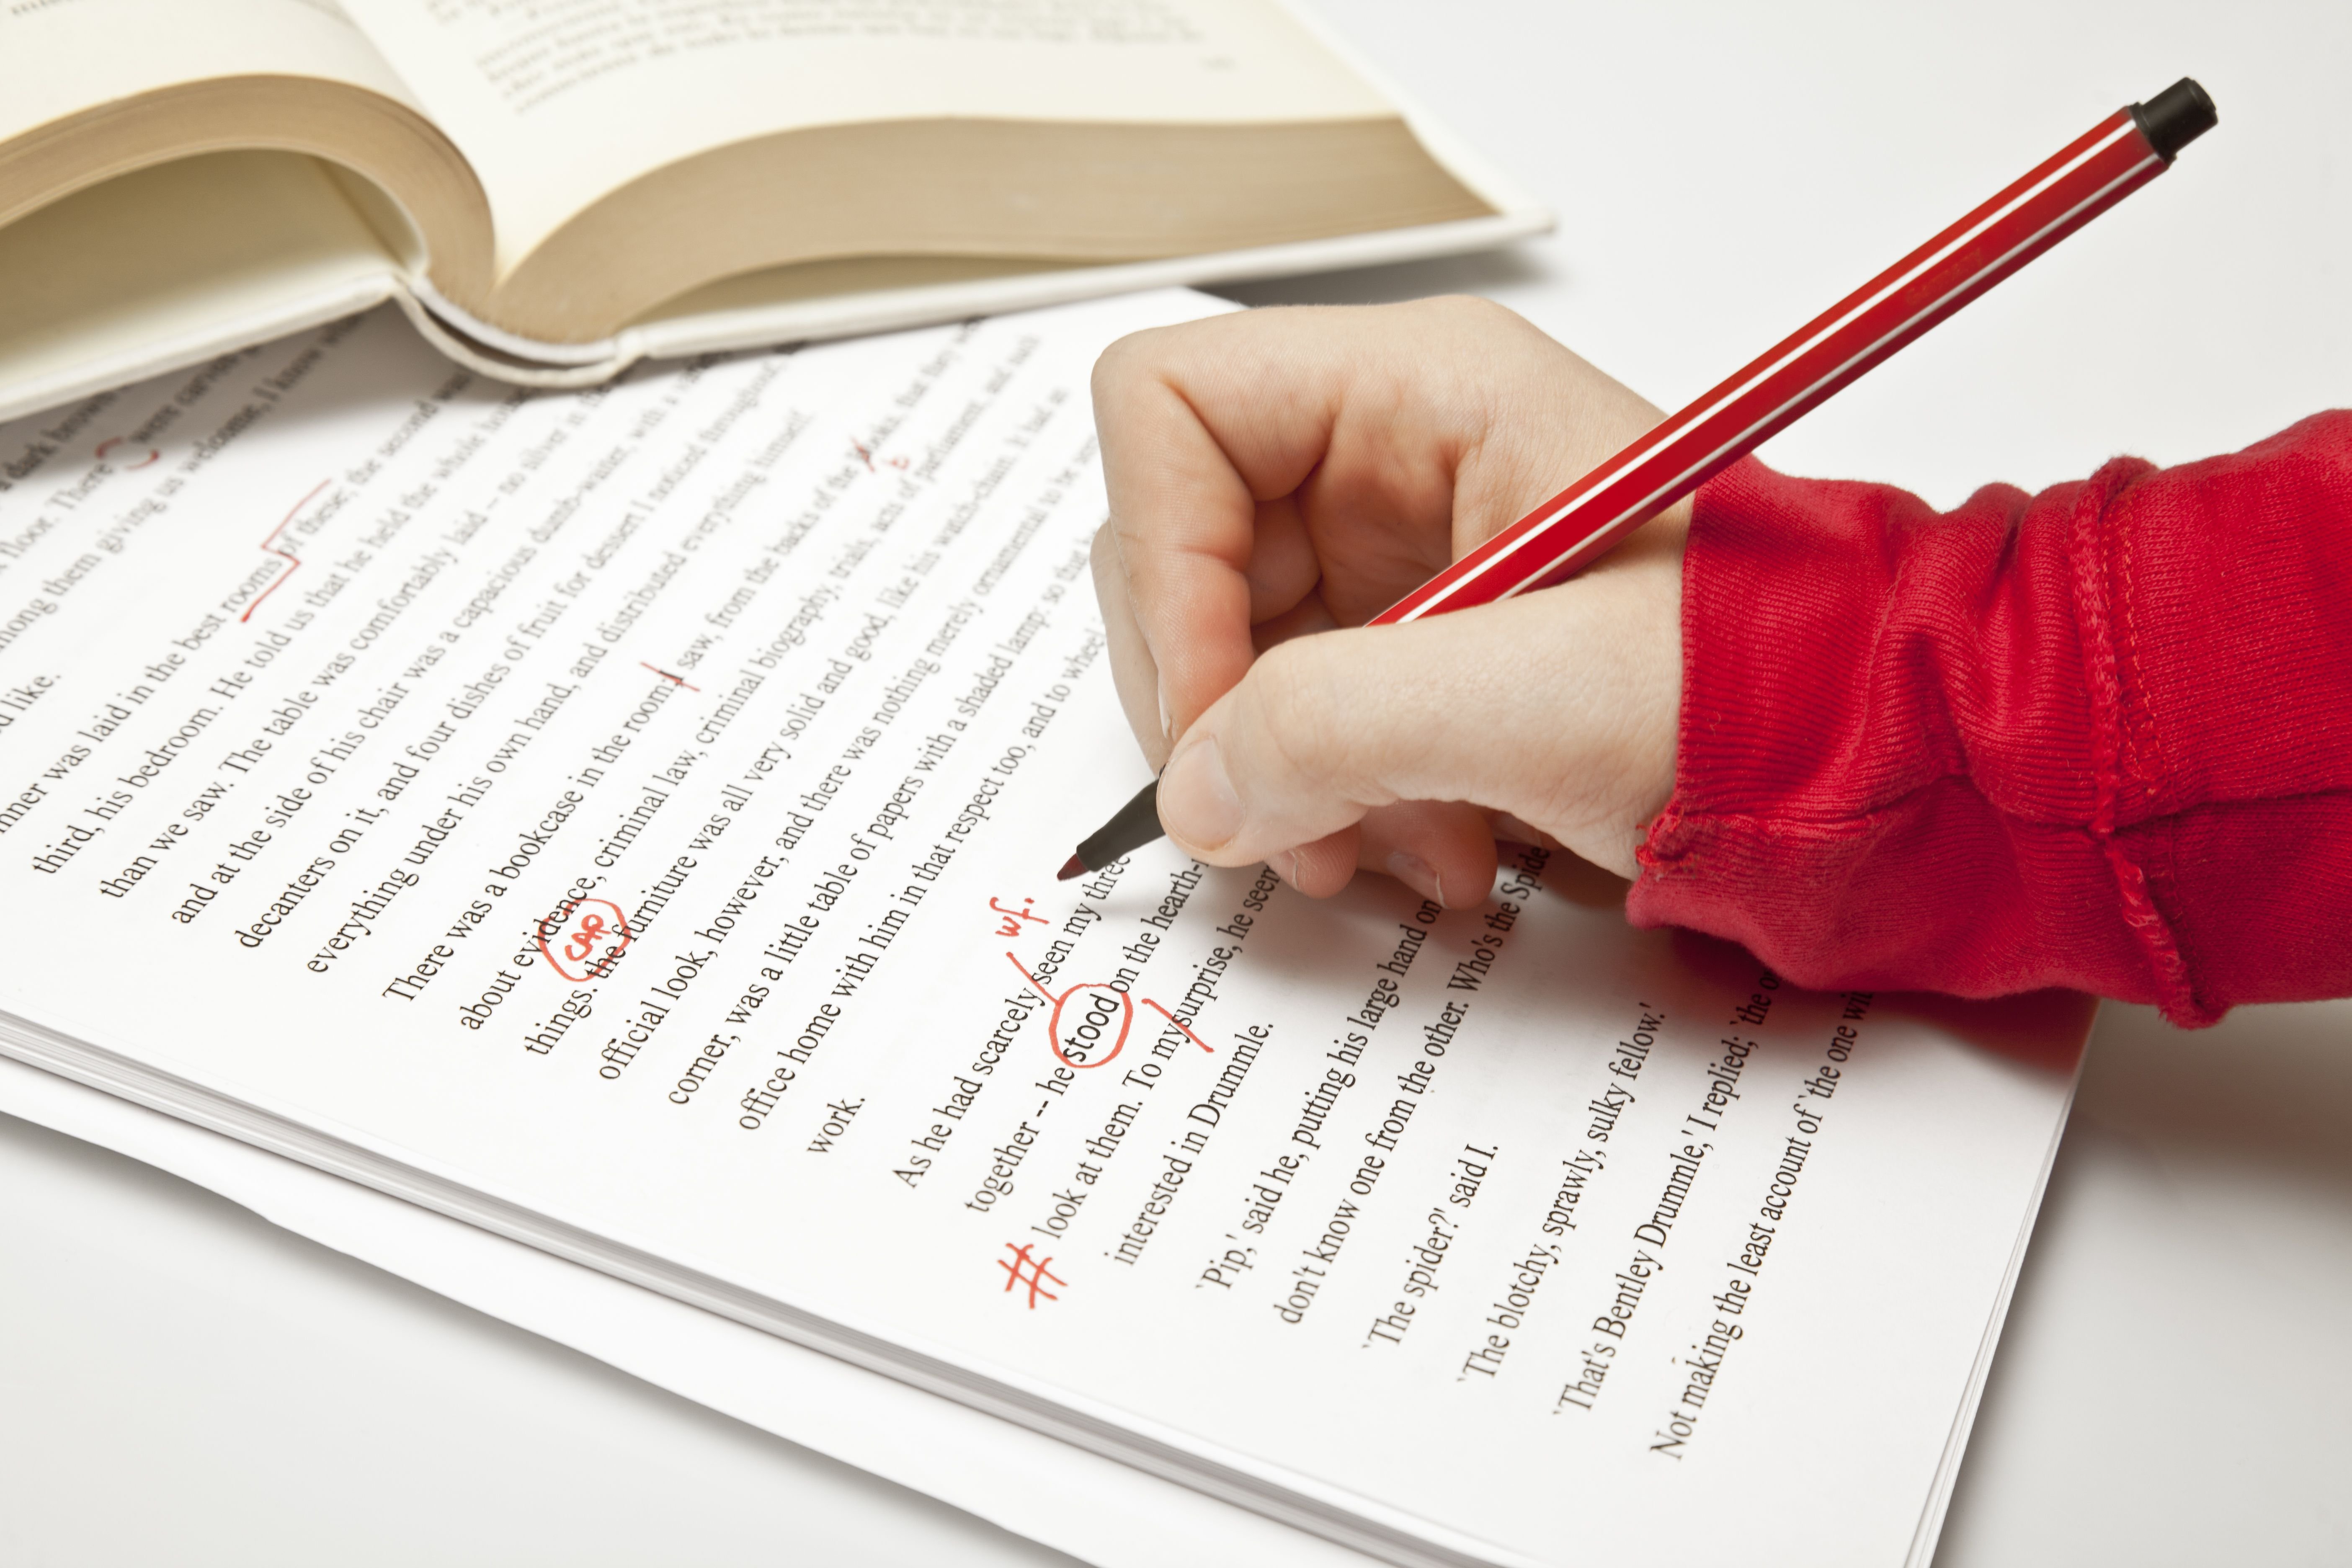 Proofreading Your Entry